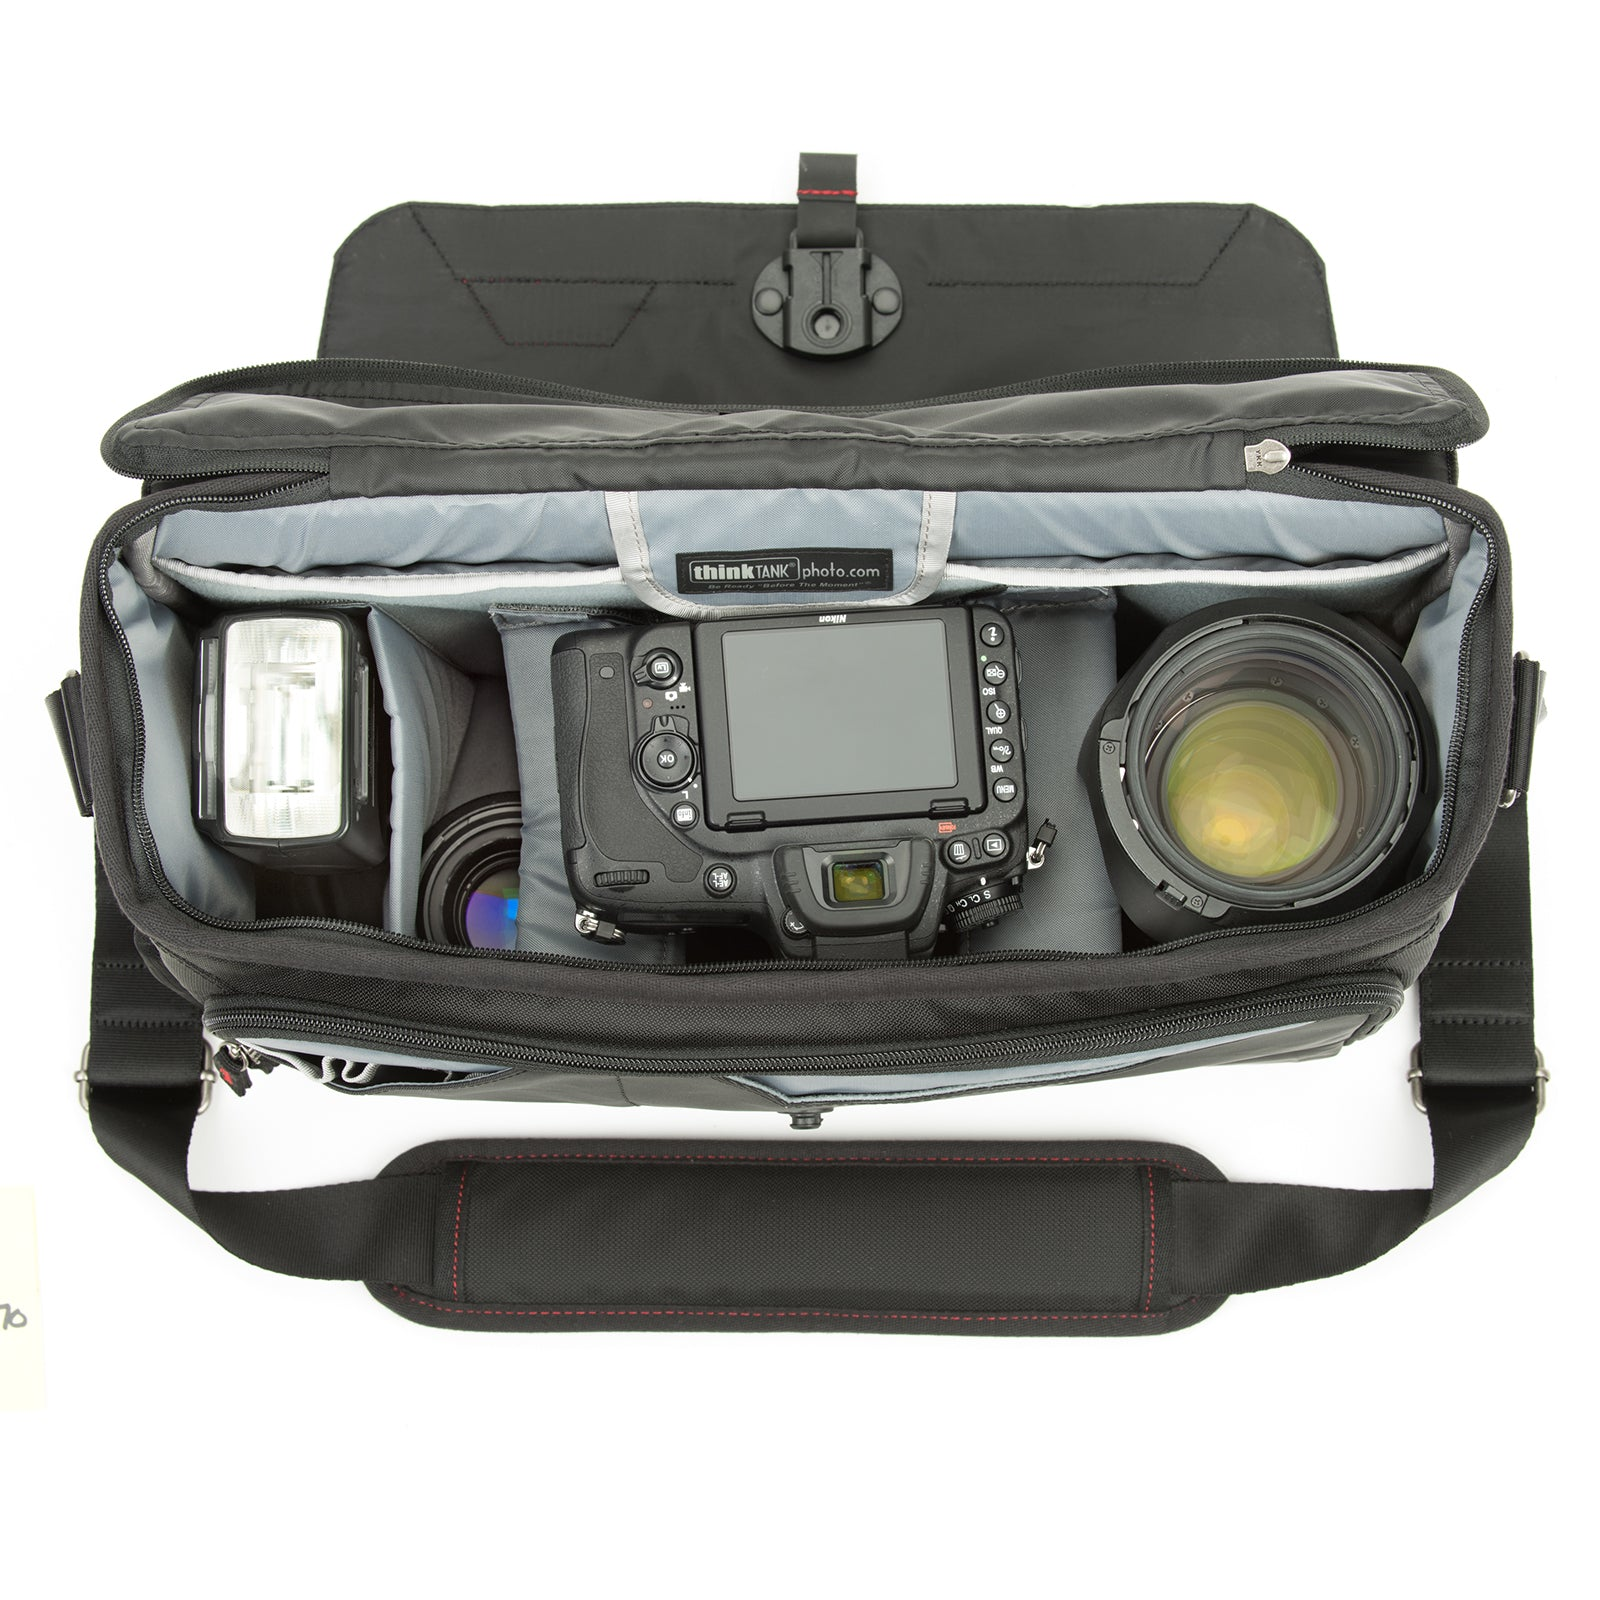 5a55beb159 Spectral 15 - Best full-featured camera shoulder bag for the price ...